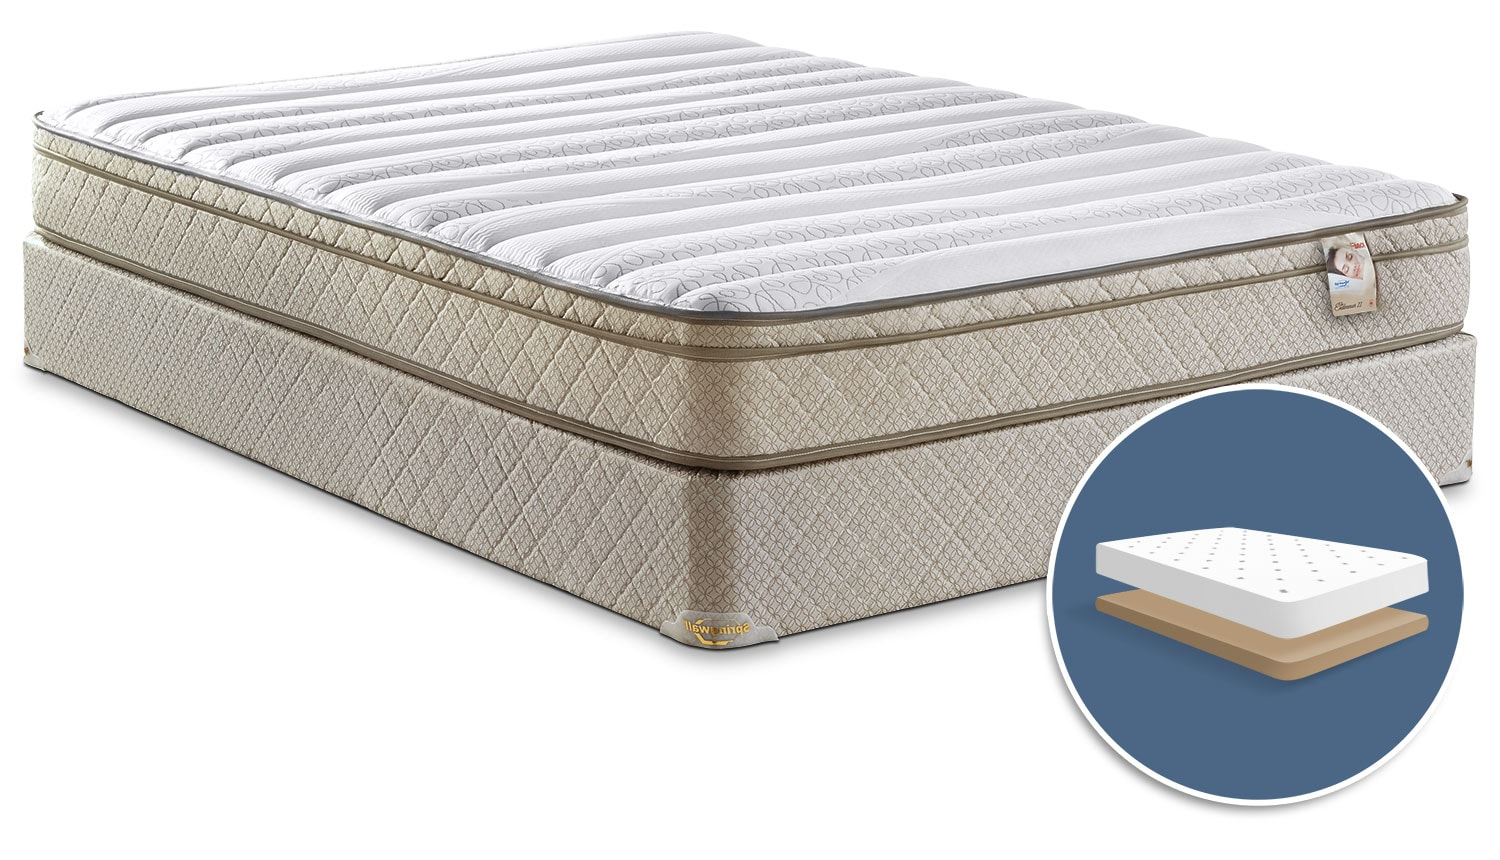 Springwall Endeavour 2 Euro-Top Firm Twin Mattress and Low-Profile Boxspring Set